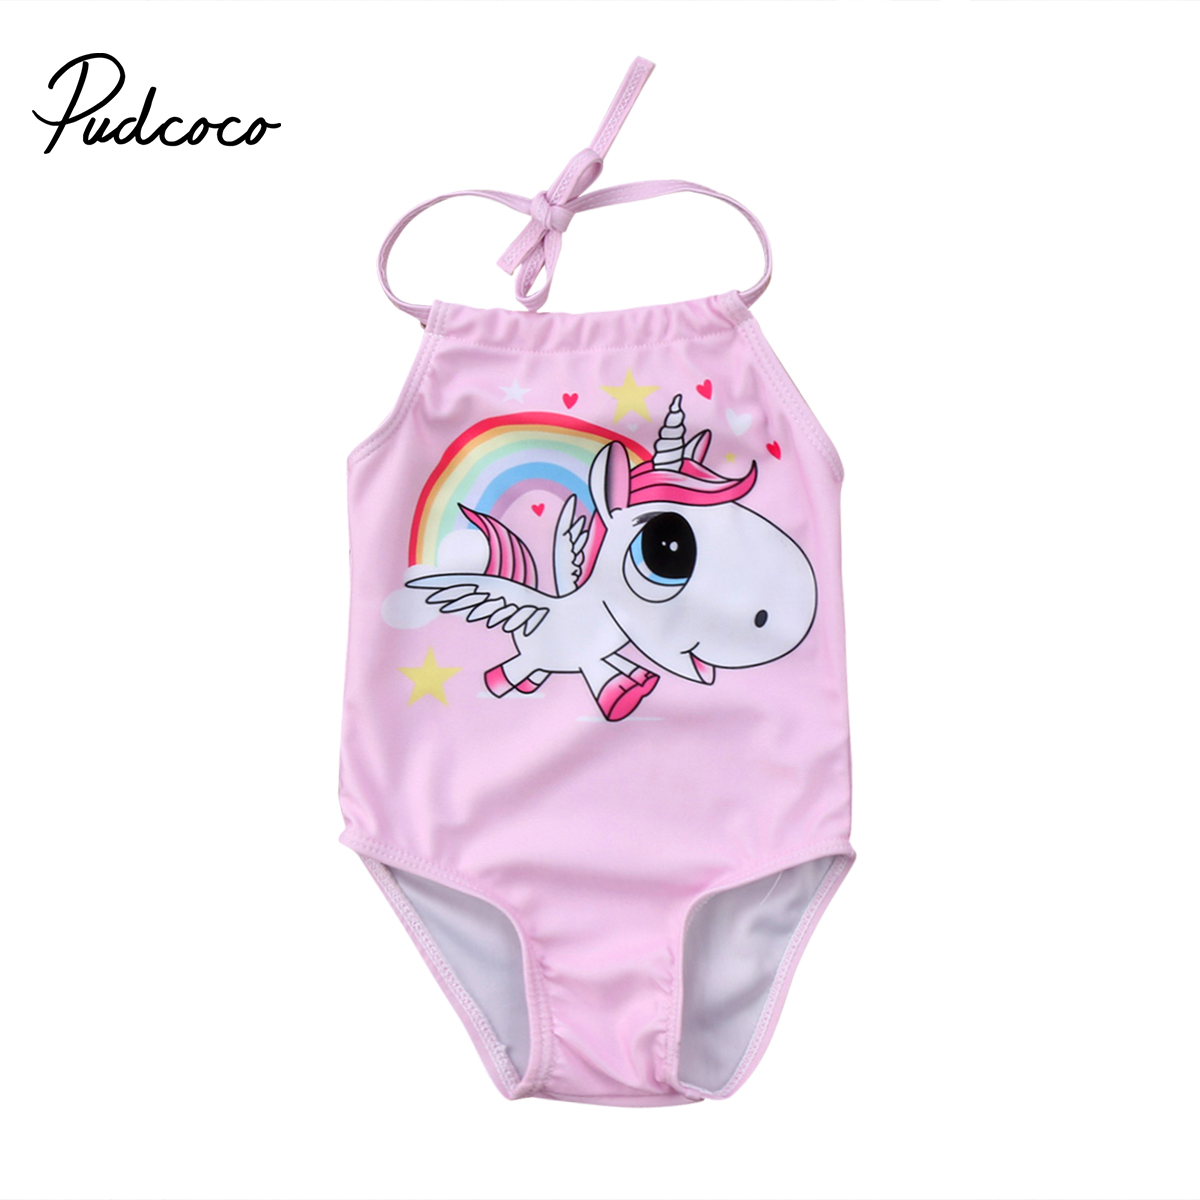 Pudcoco 0-24Months  Kid Baby Girls Cute Unicorn Bikini Swimwear Swimsuit Bathing Suit Beachwear